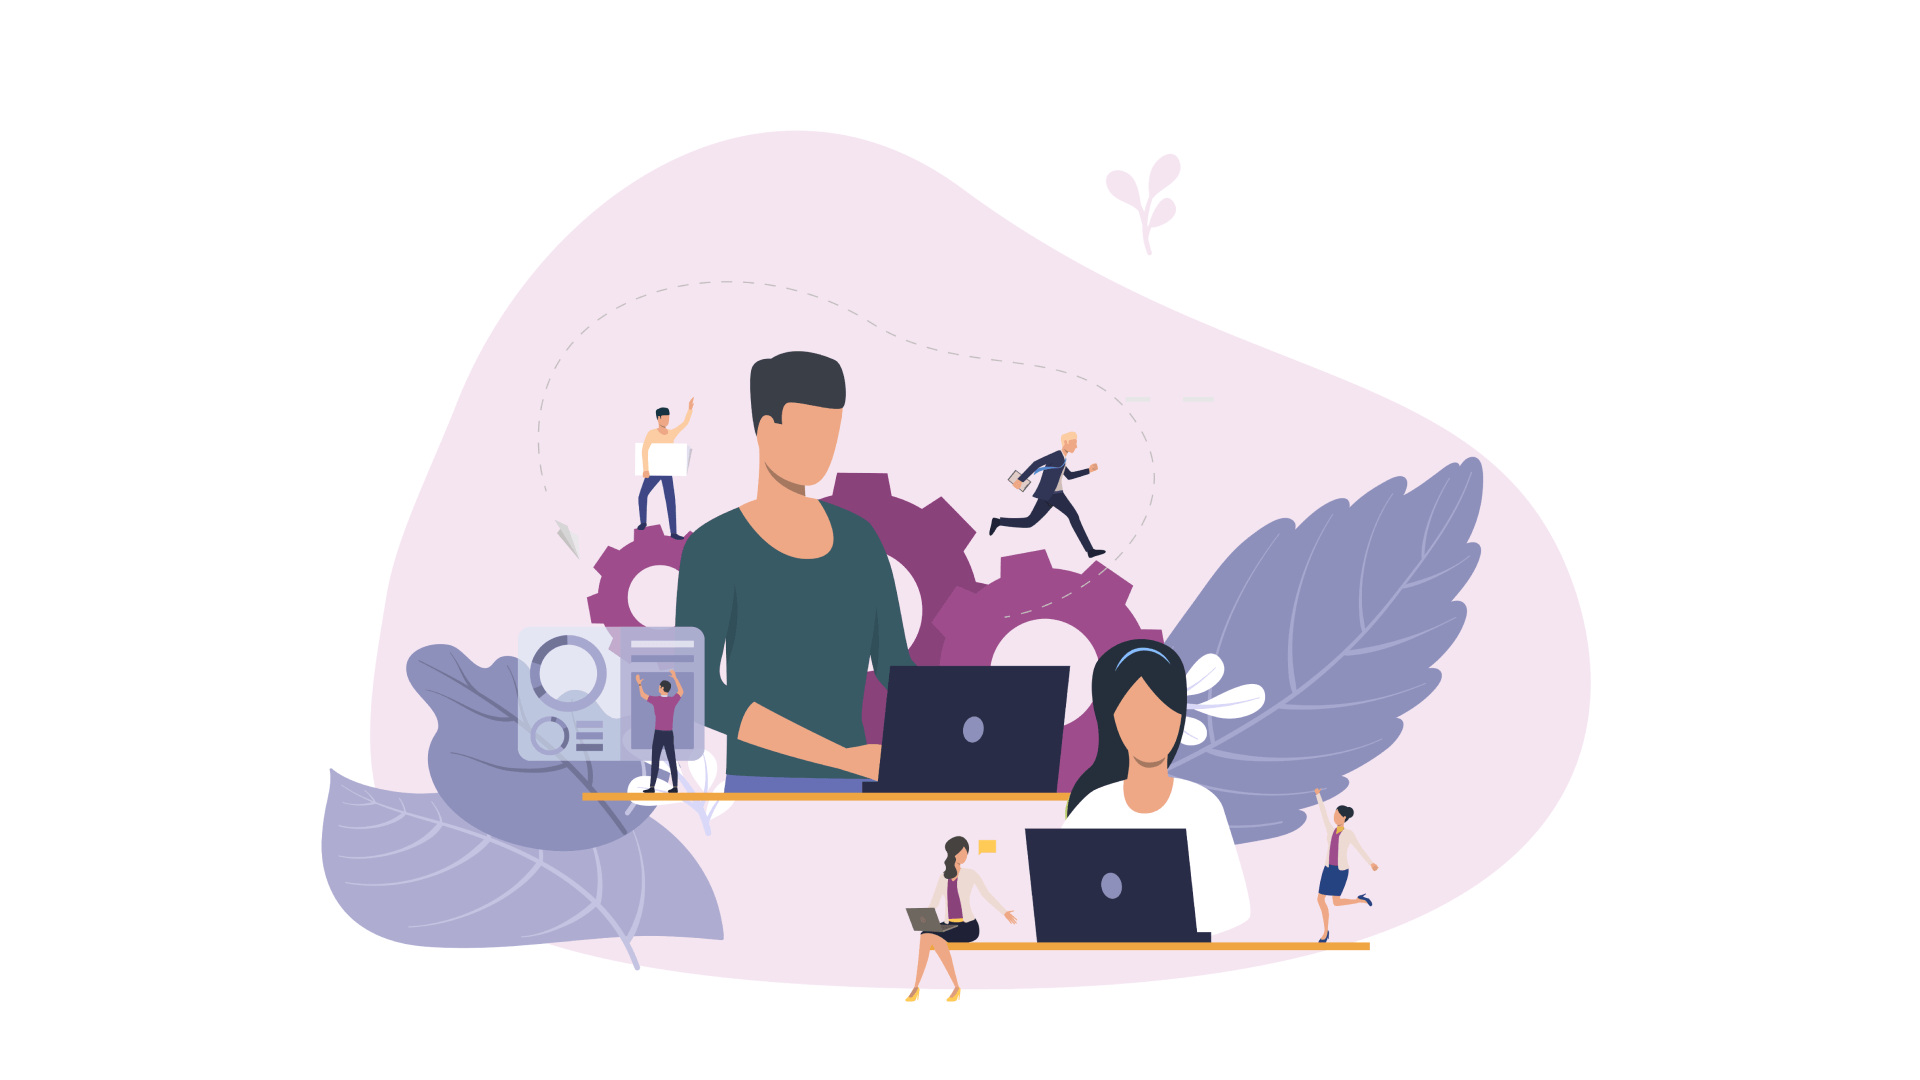 Different types of contractors that you may consider when working on a software solution: freelancers, in-house staff, and offshore developers.